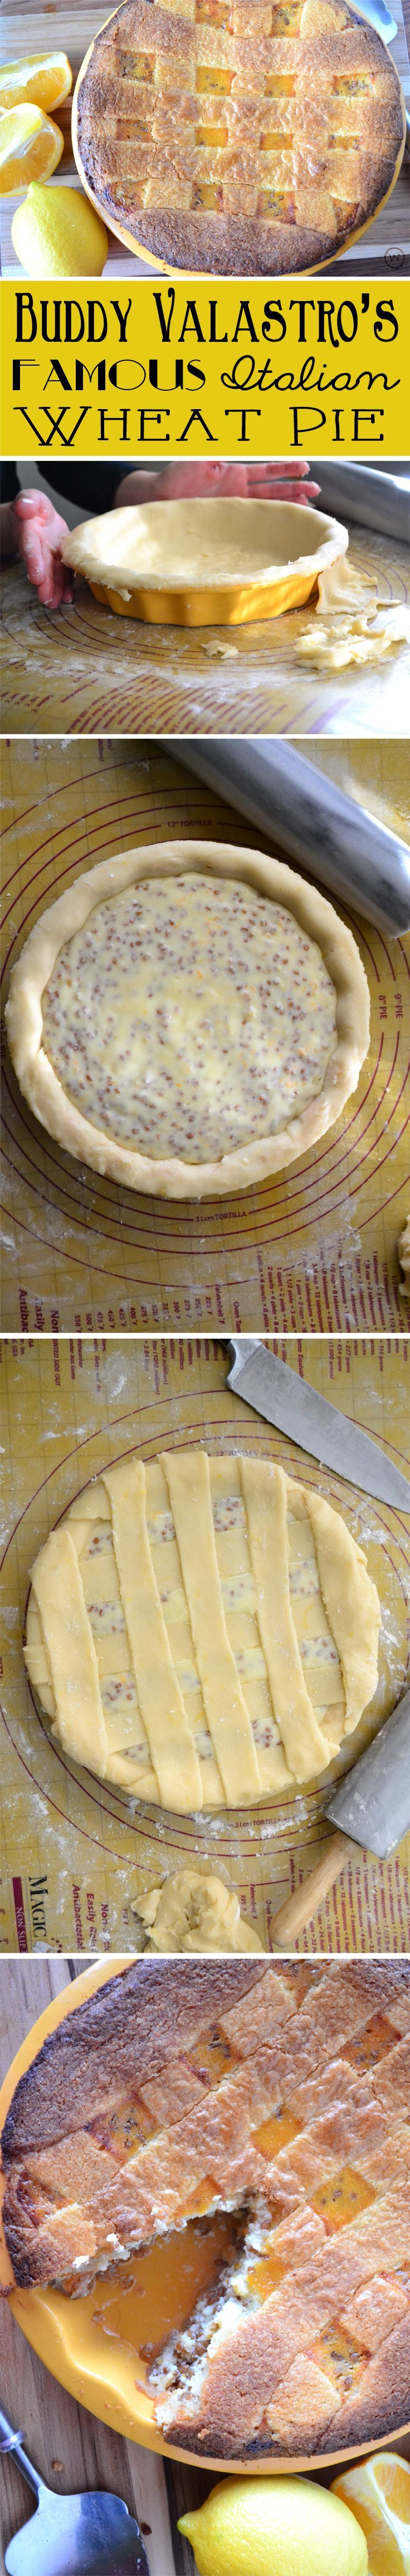 how to cook wheat berries for pastiera